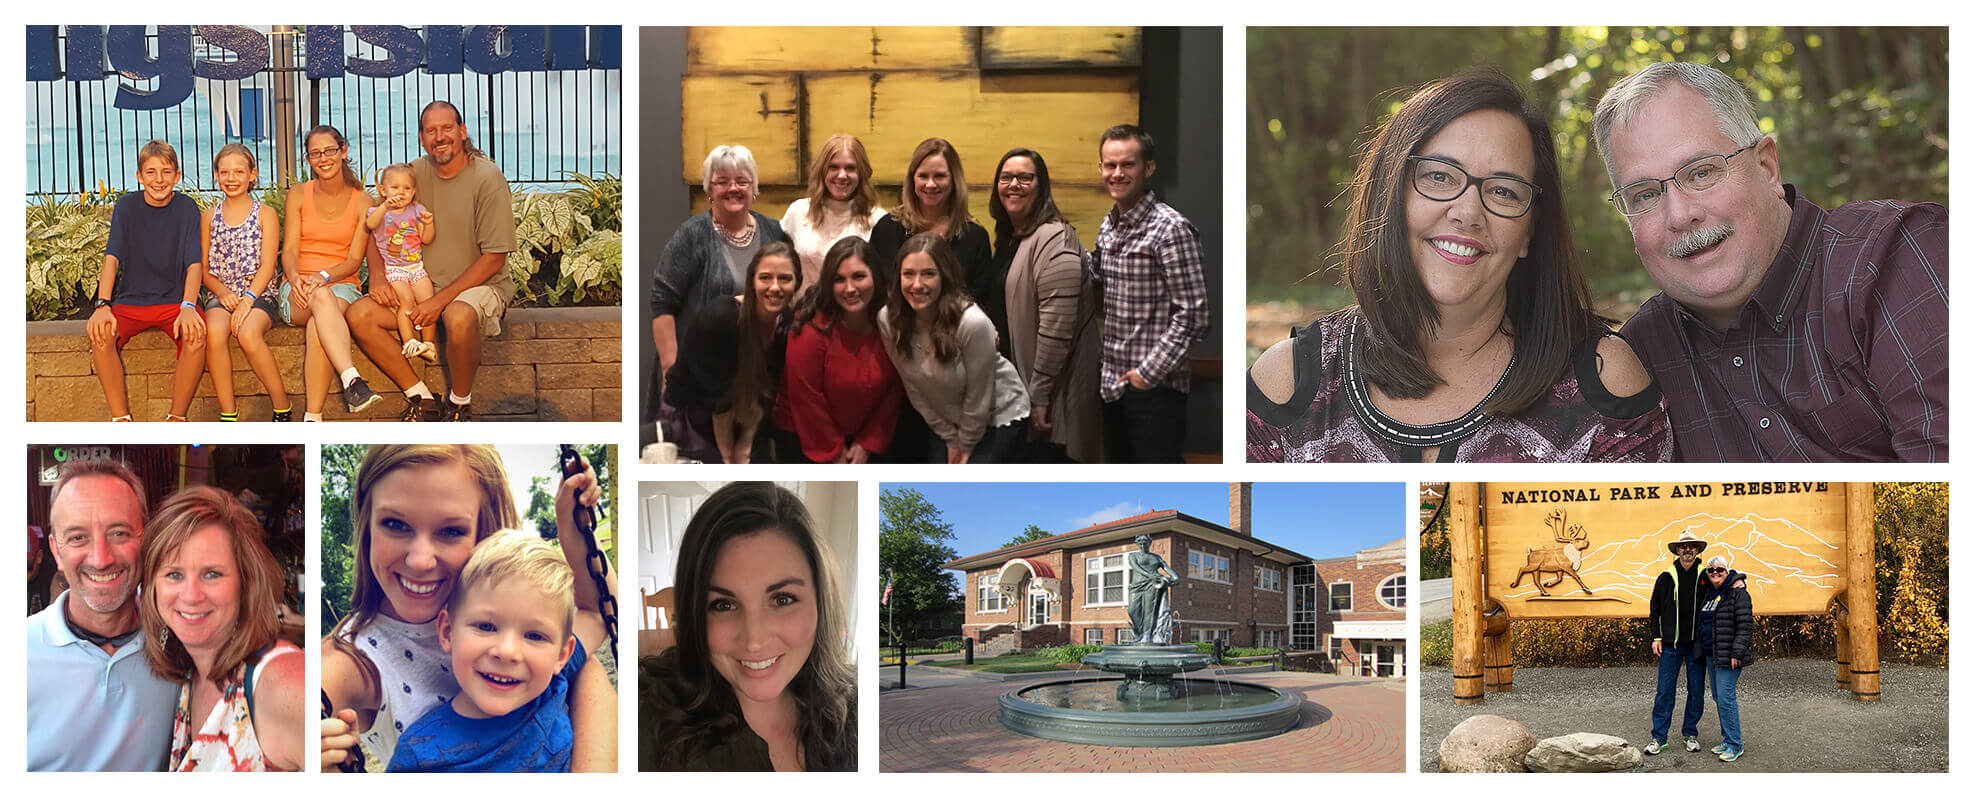 Collage of the Keck Family Dentistry team